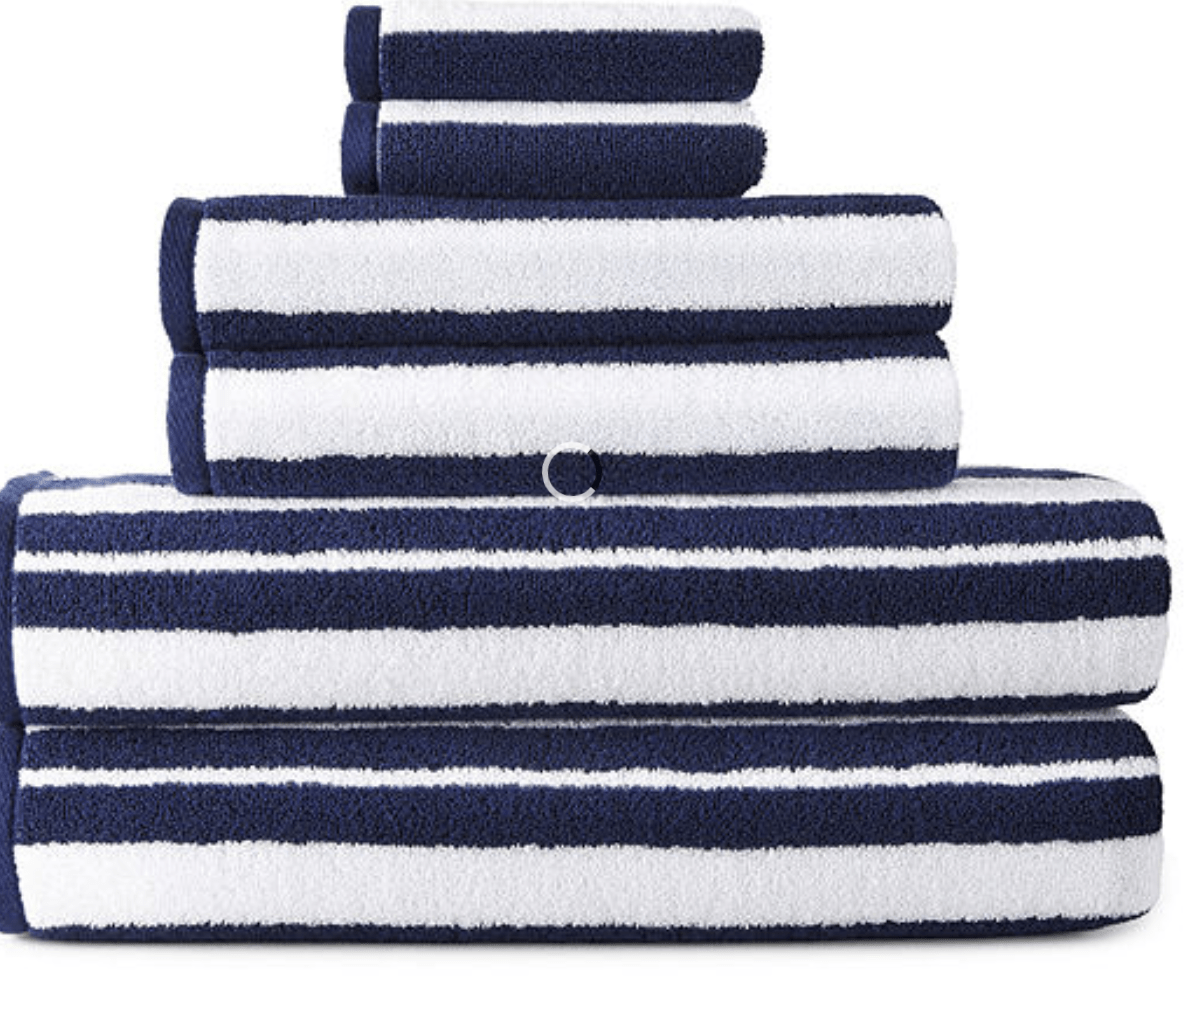 JCP Bath Towel Sale